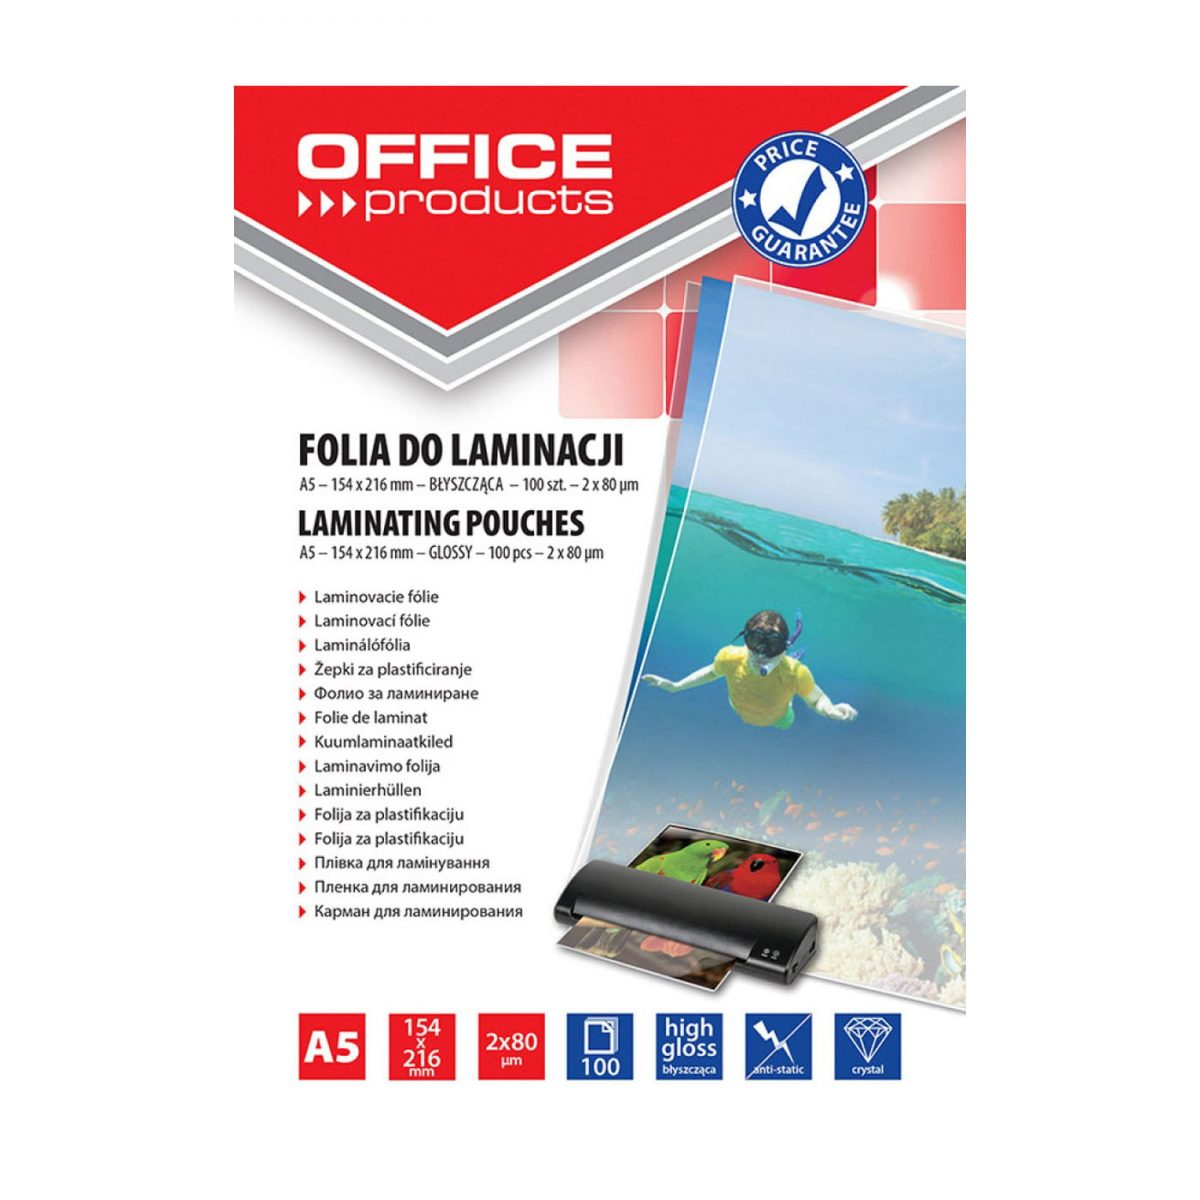 Folie laminare A5, 80 microni, 100buc/top, Office Products